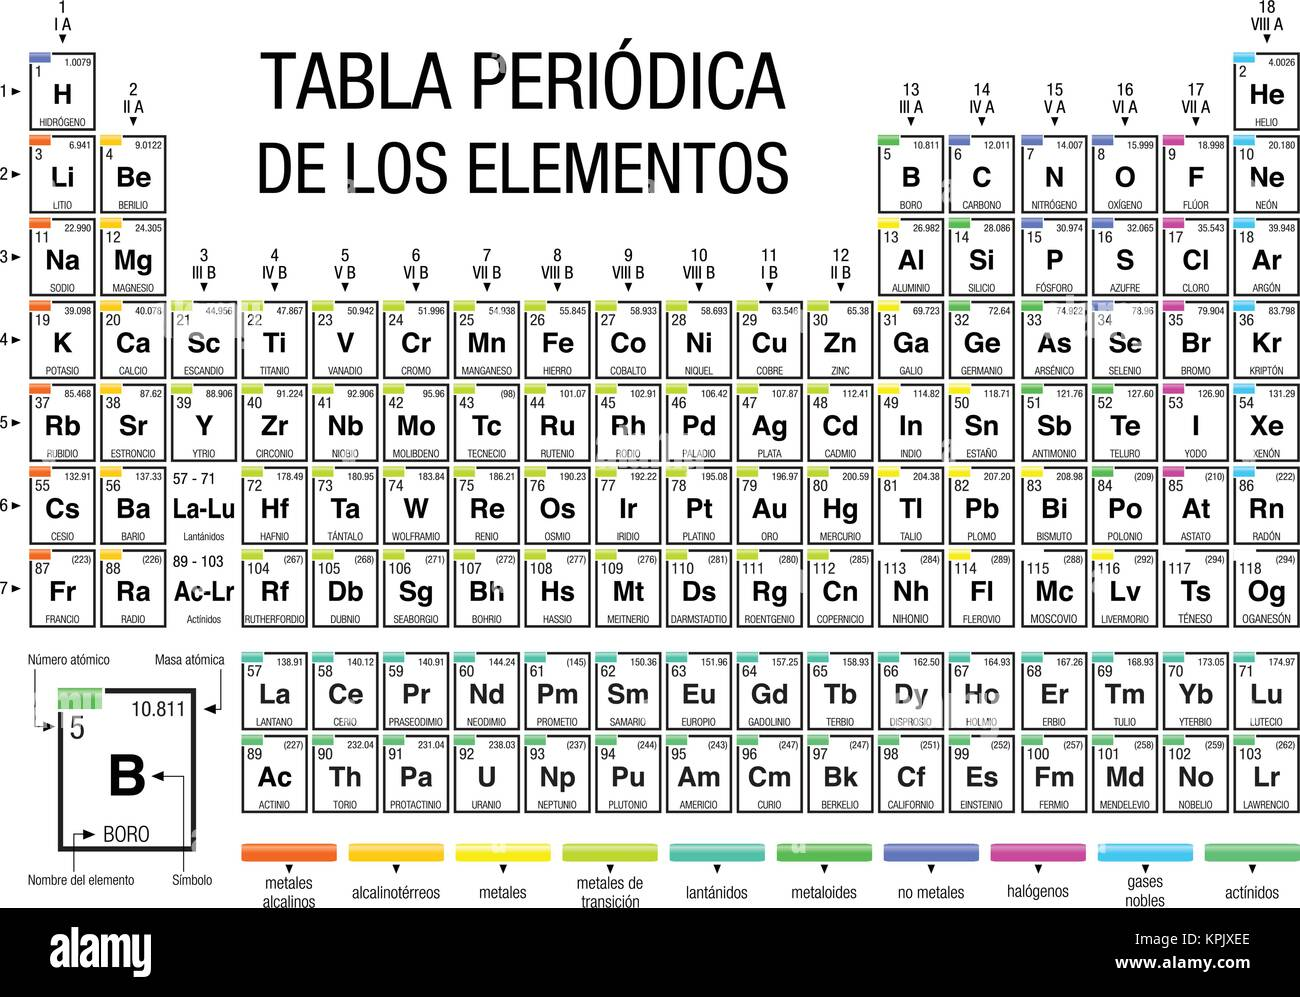 Tabla periodica de los elementos periodic table of elements in tabla periodica de los elementos periodic table of elements in spanish language on white background with the 4 new elements included on november 28 urtaz Gallery